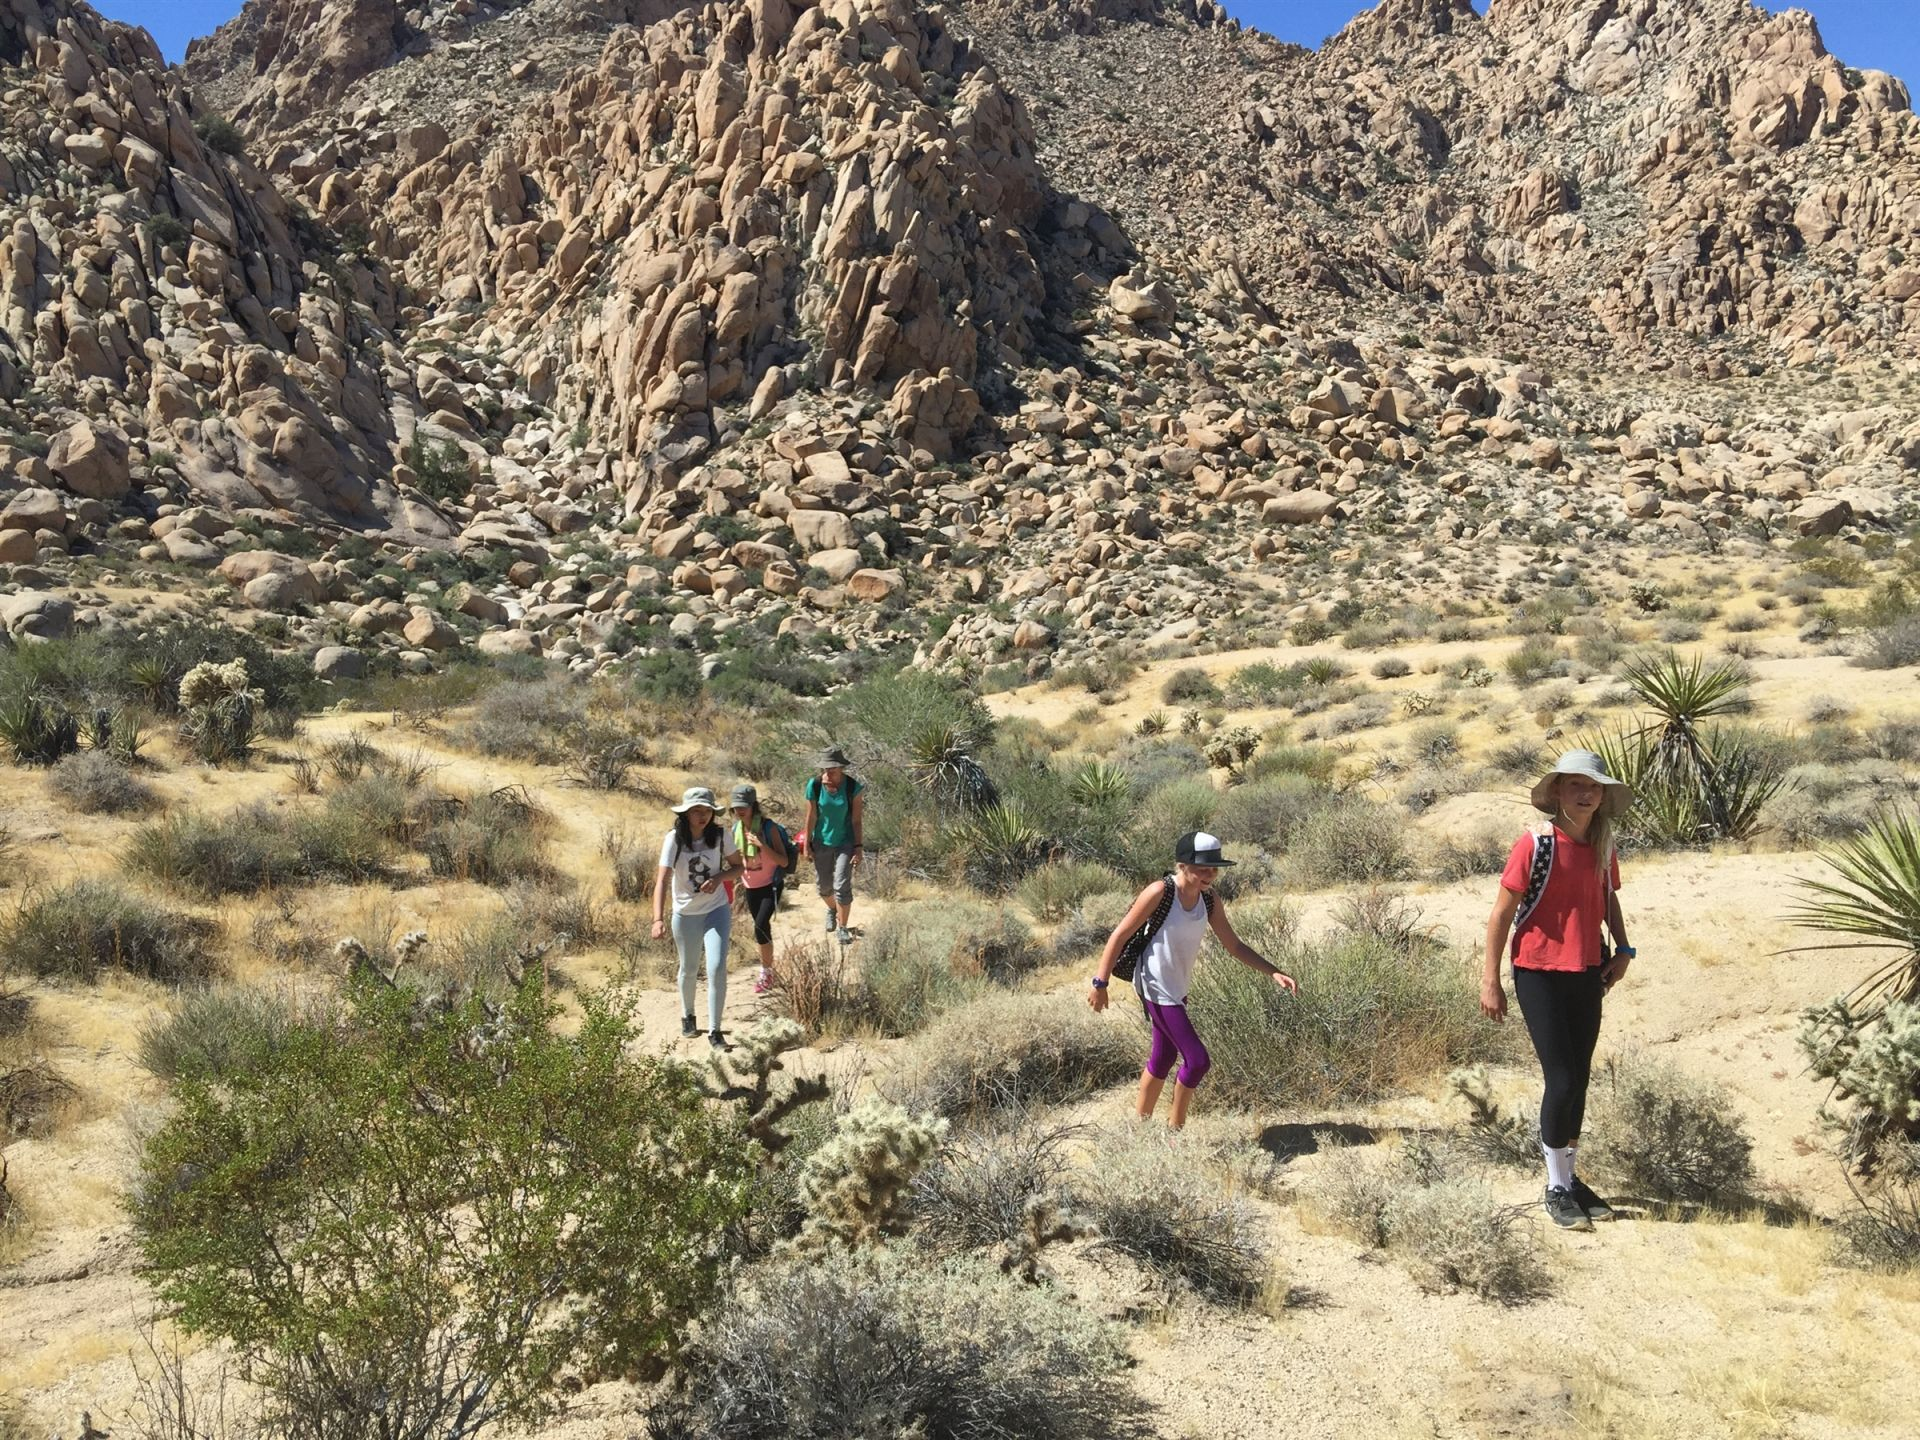 Seventh Grade trip to Joshua Tree National Park